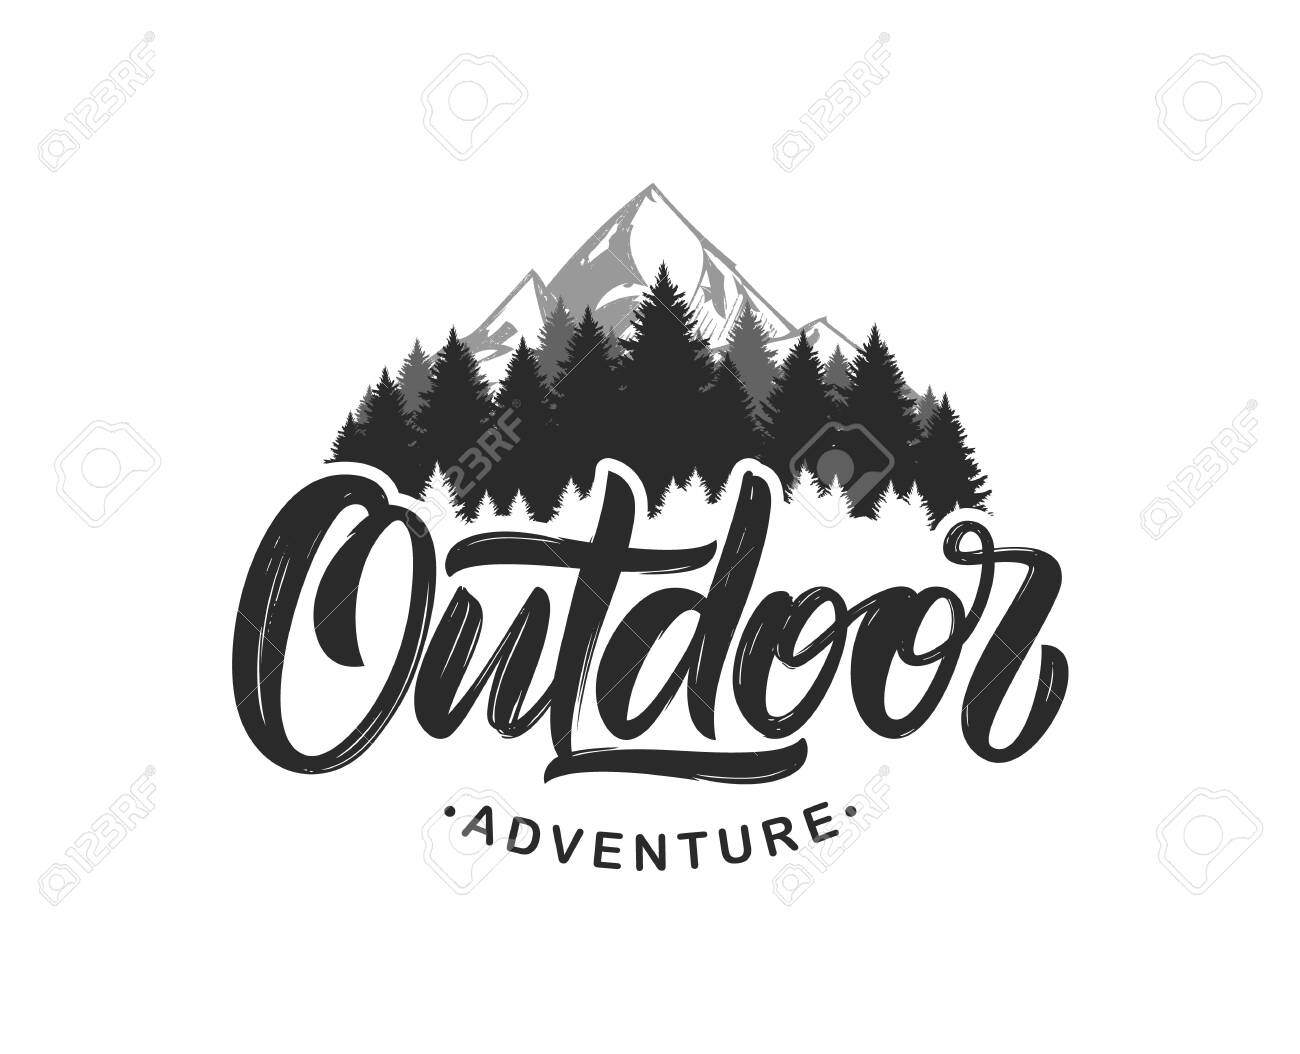 Vector illustration: Handwritten Modern brush lettering composition of Outdoor adventure with silhouette of pine forest and mountains. - 122578931